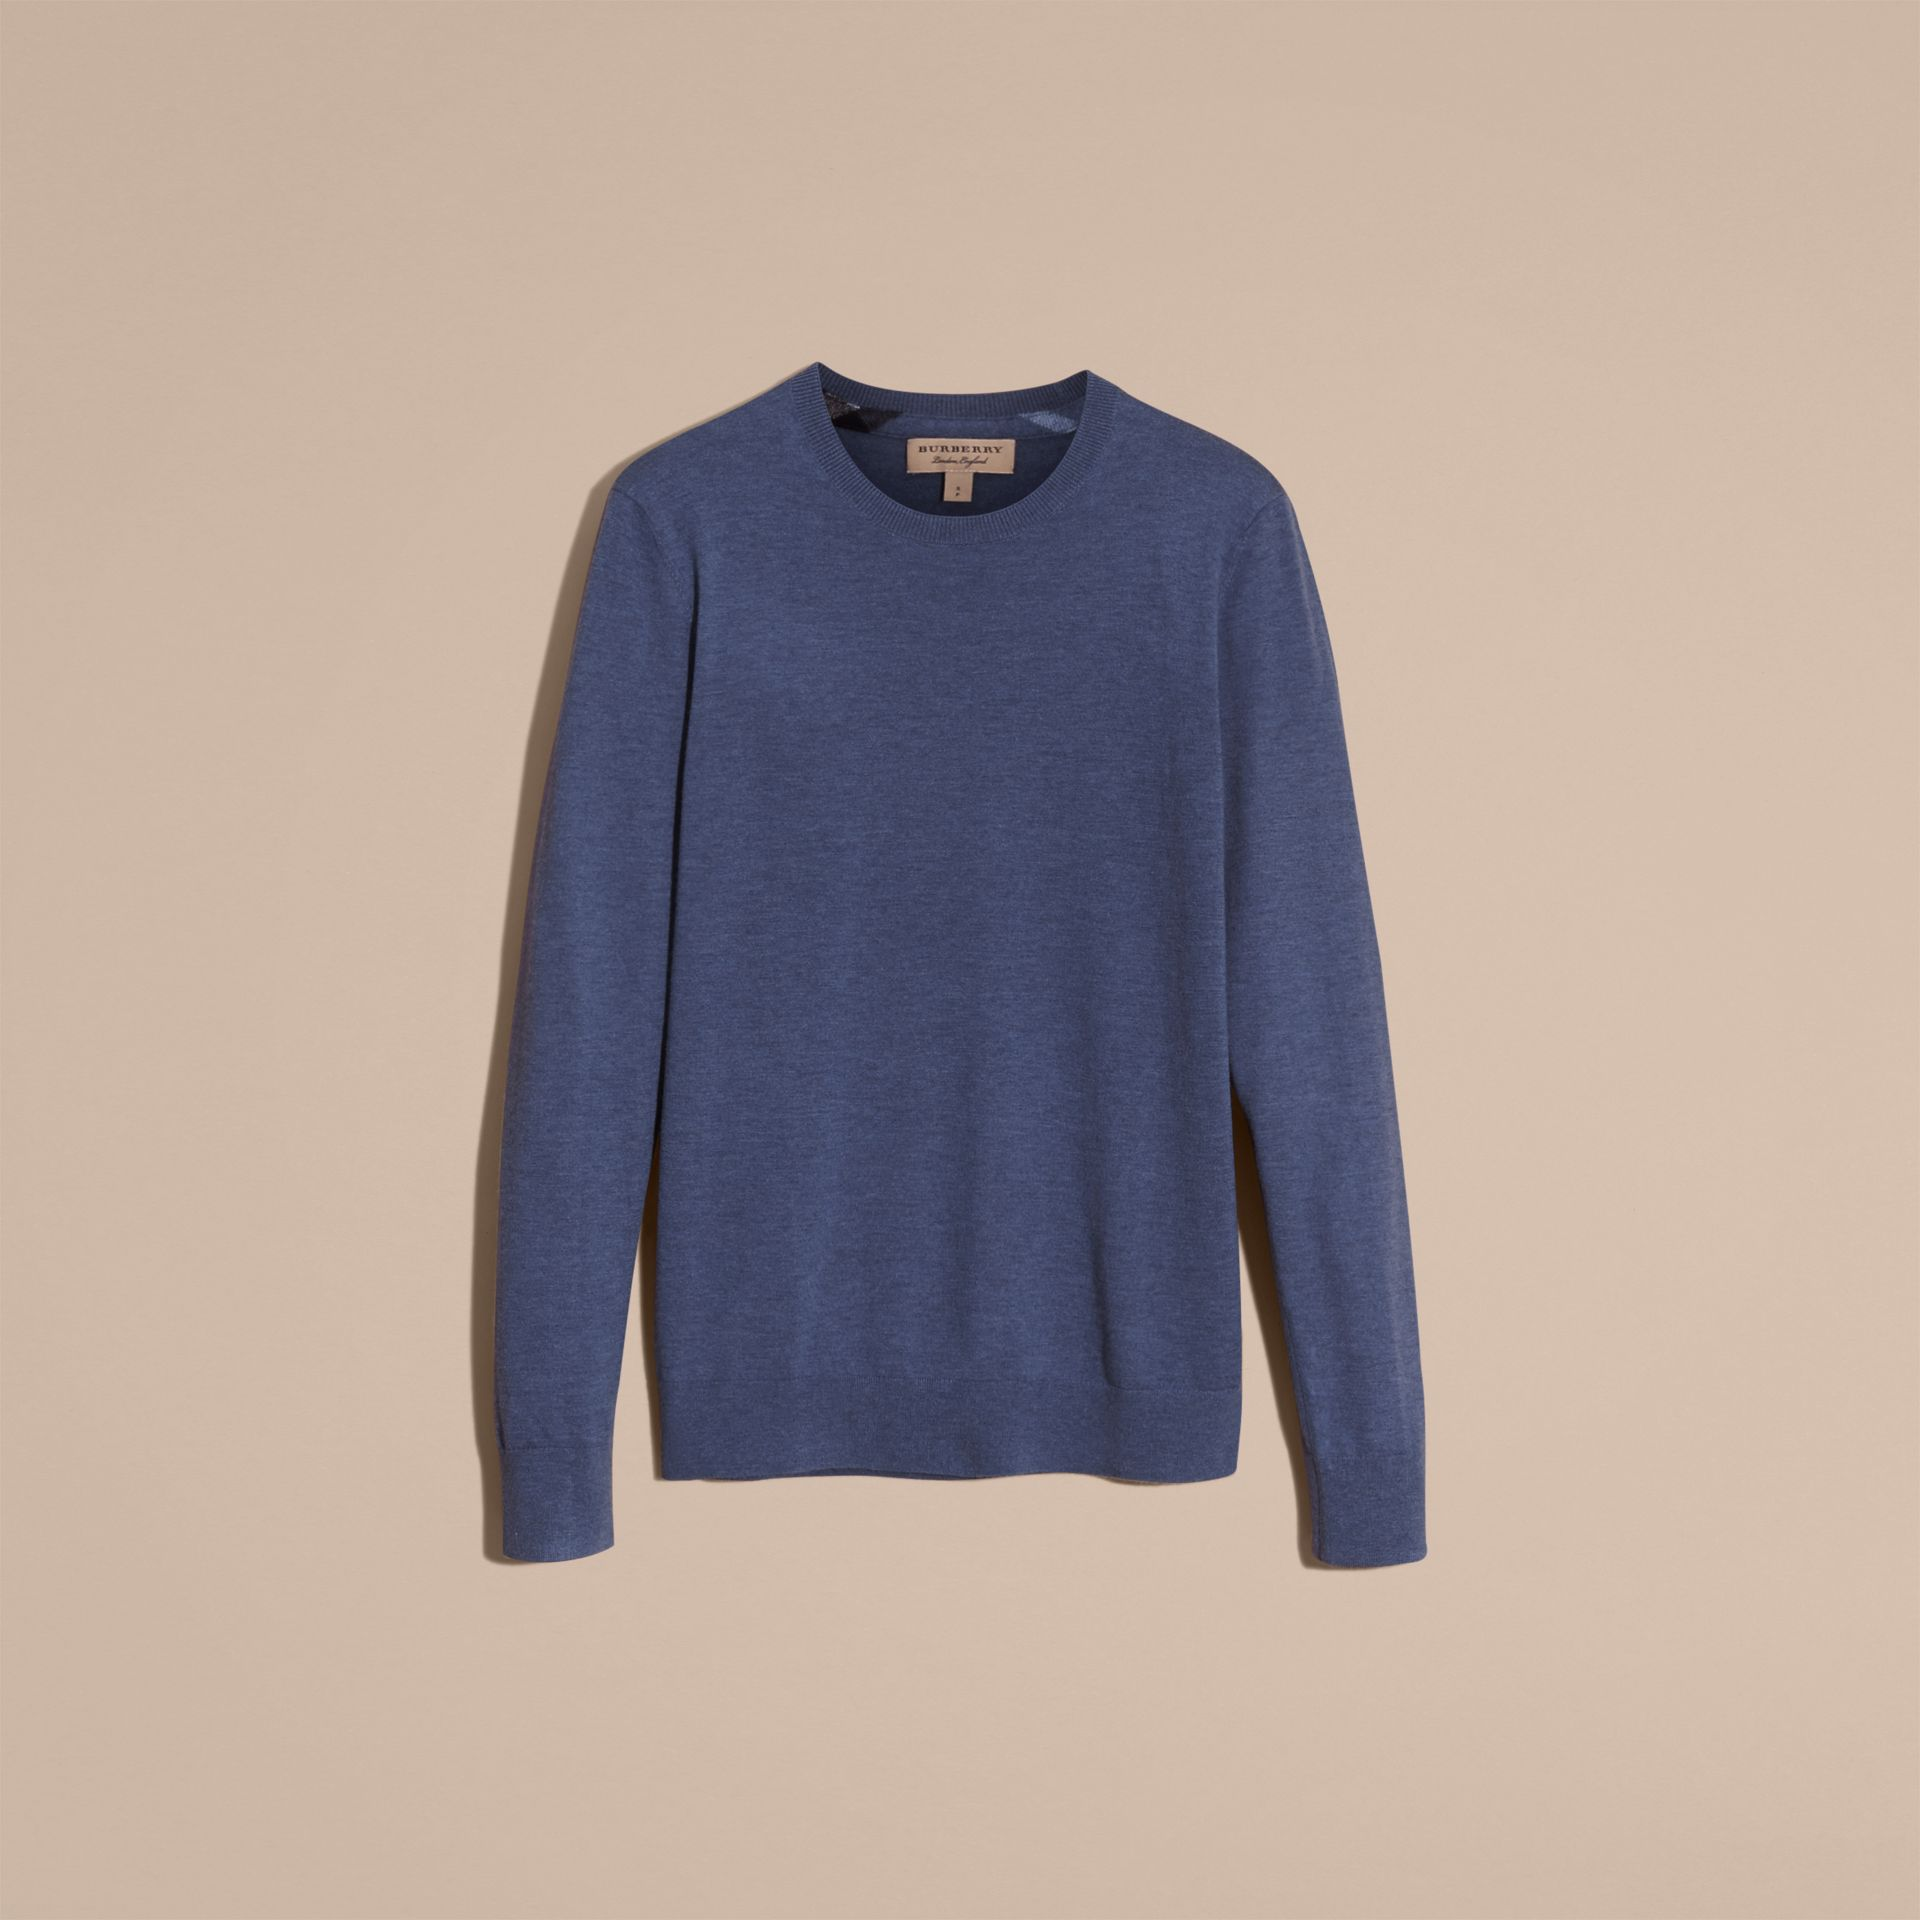 Lightweight Crew Neck Cashmere Sweater with Check Trim in Dusty Blue - Men | Burberry Canada - gallery image 4